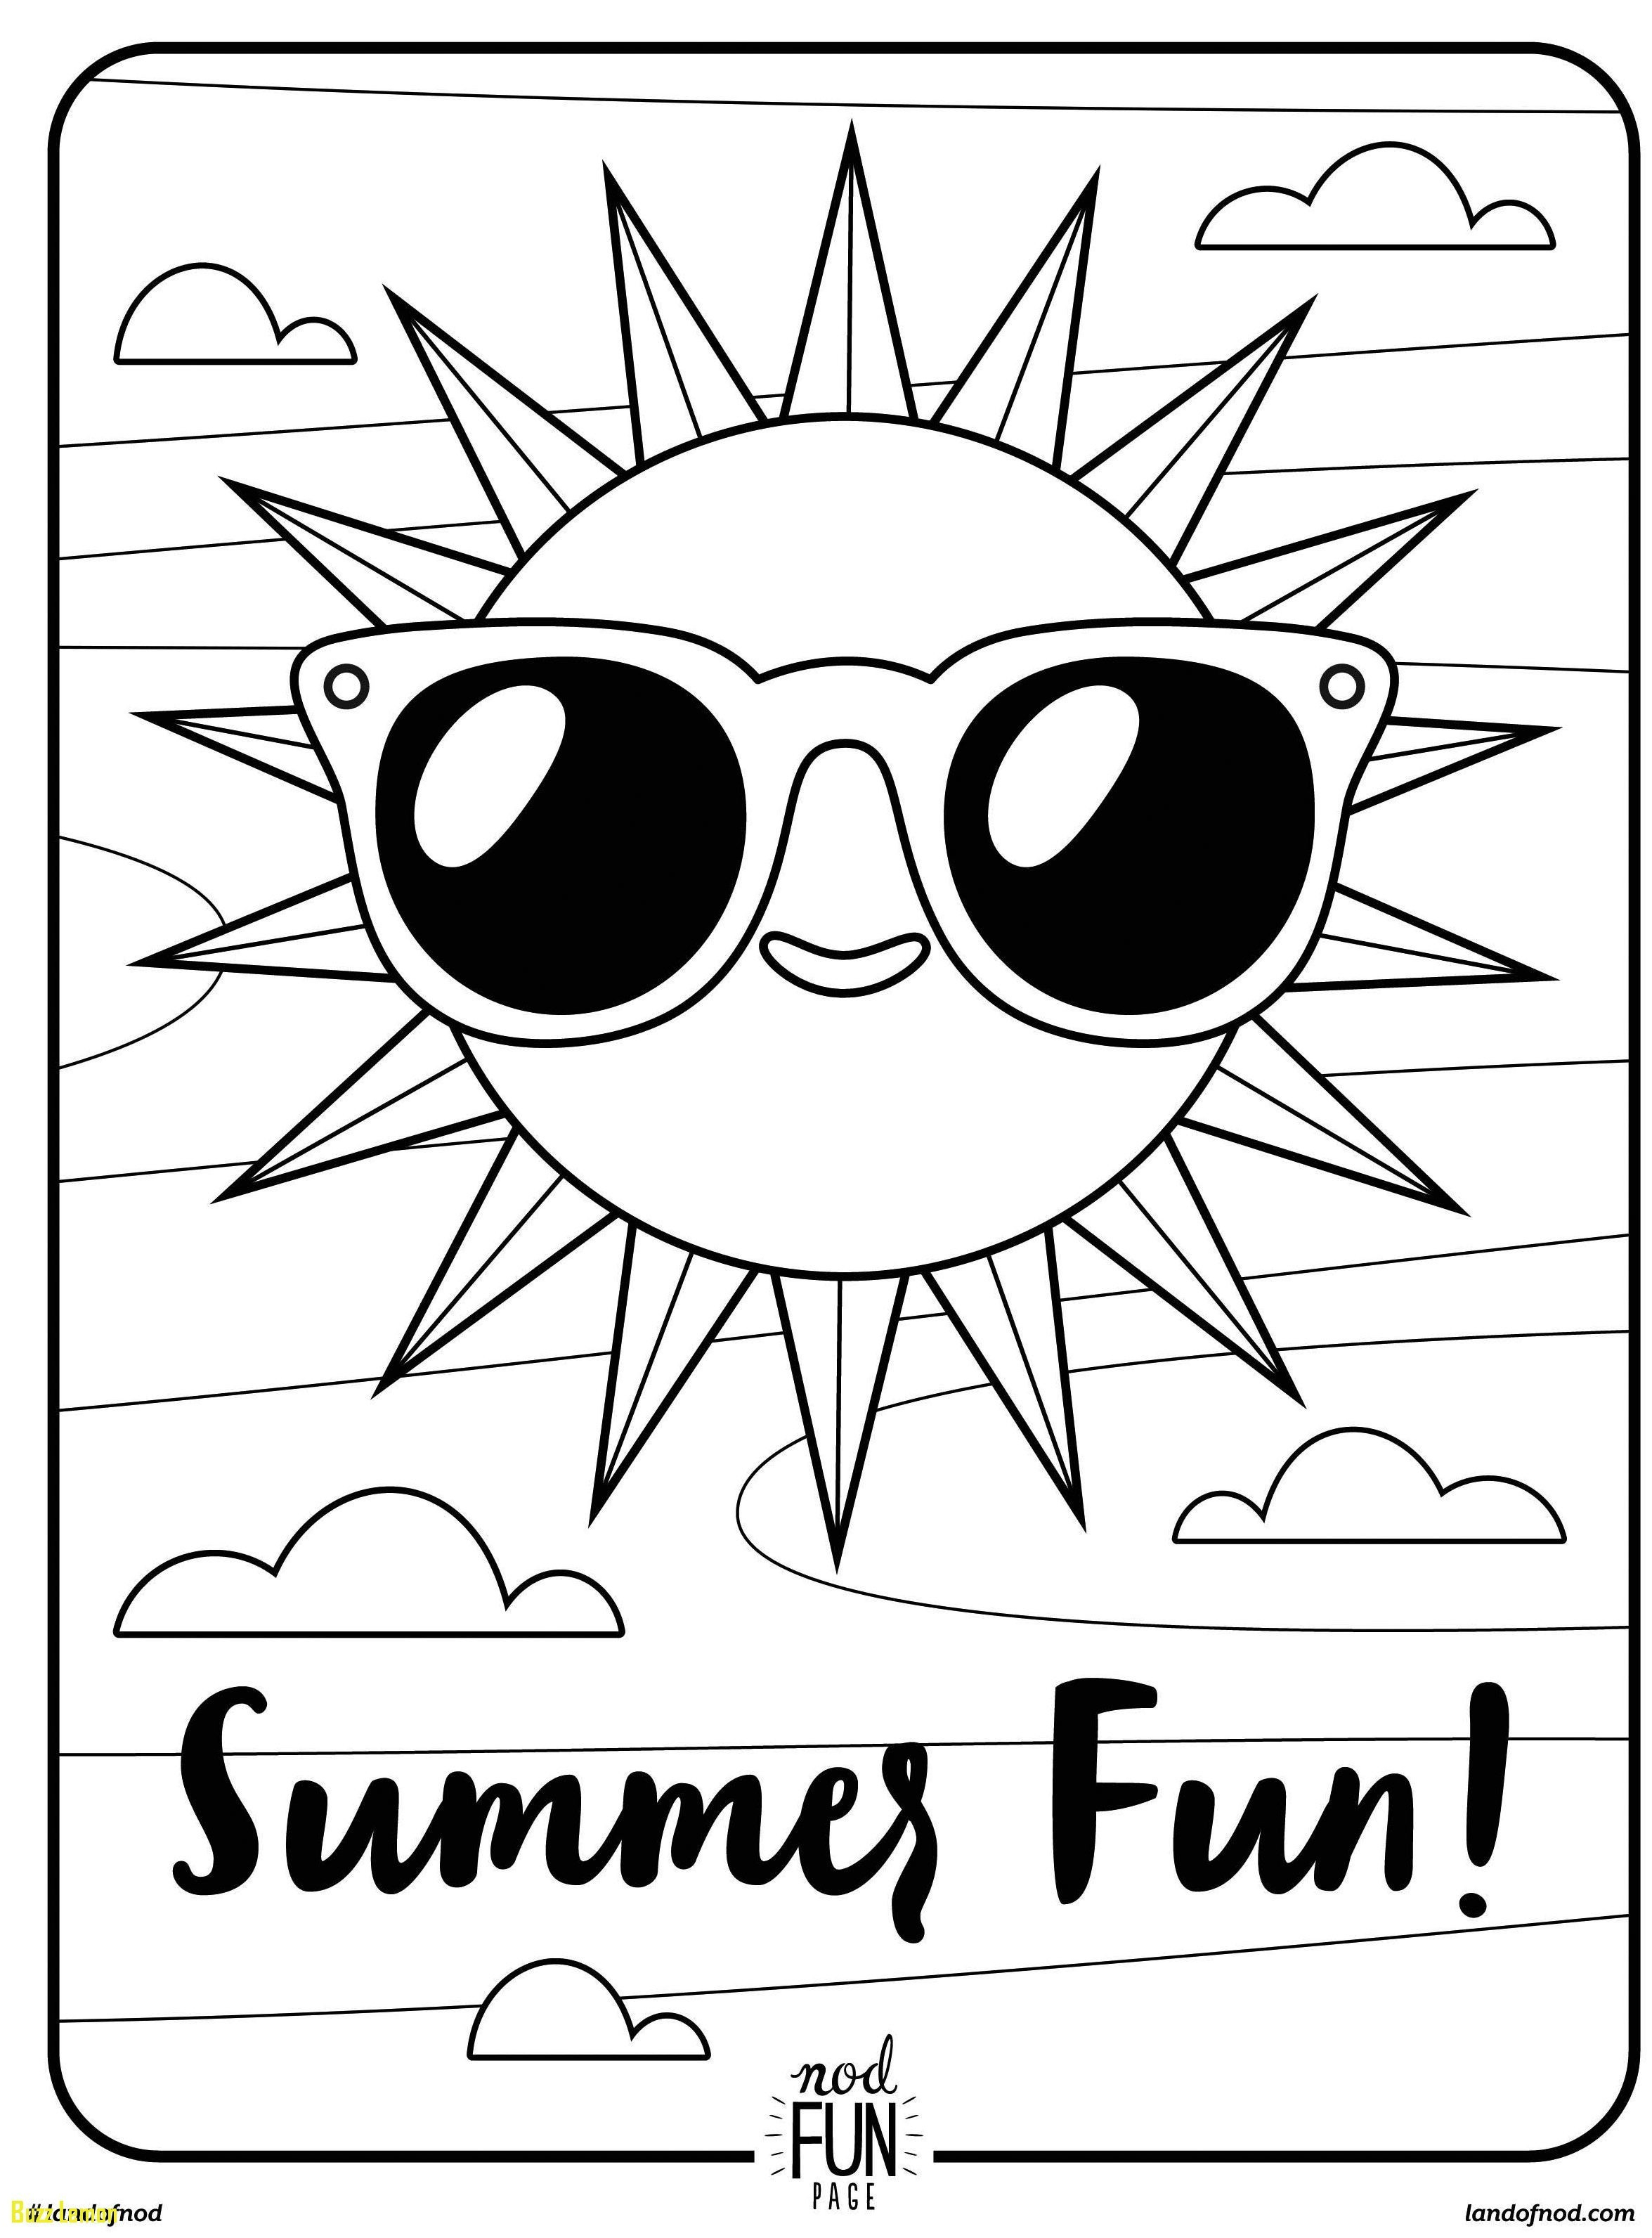 Word Search Coloring Pages Coloring Pages Seashellloring Pages Free Summer Worksheets 3rd